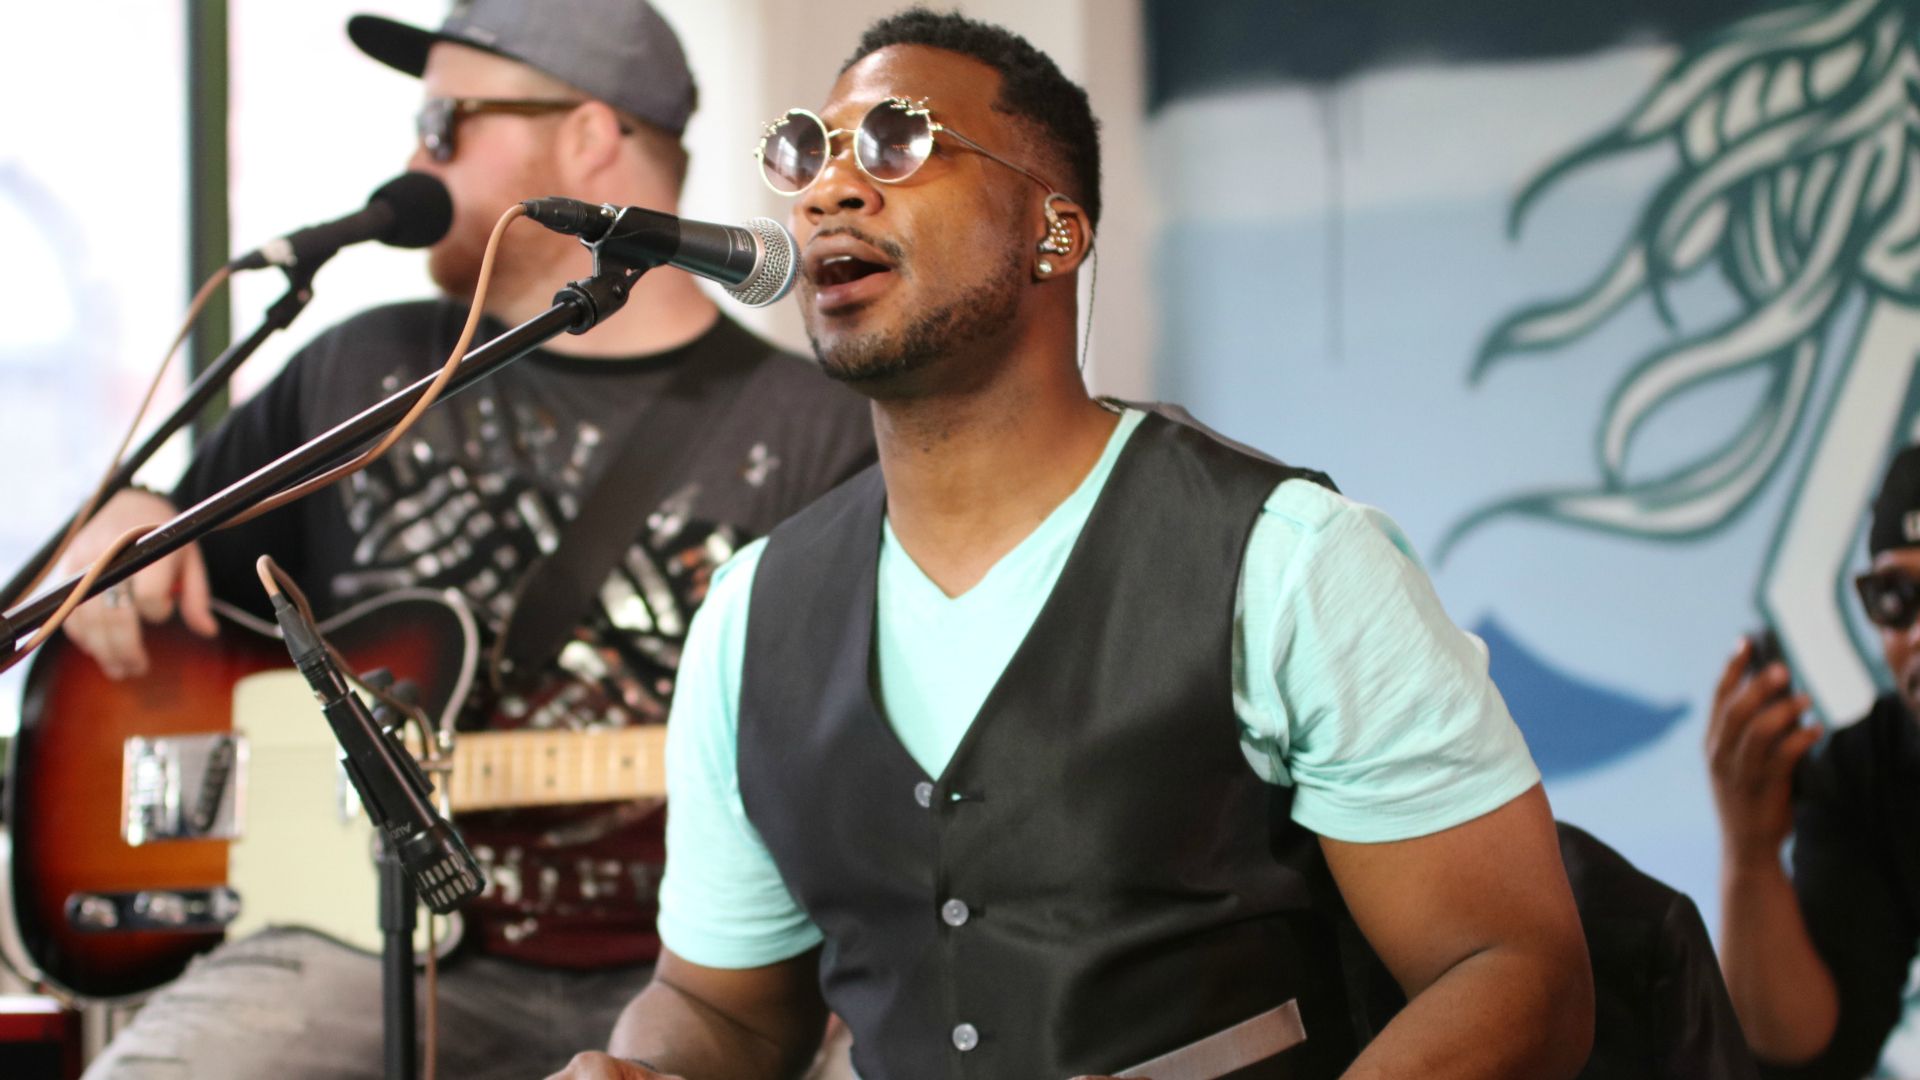 Robert Randolph and the Family Band at Baeble HQ